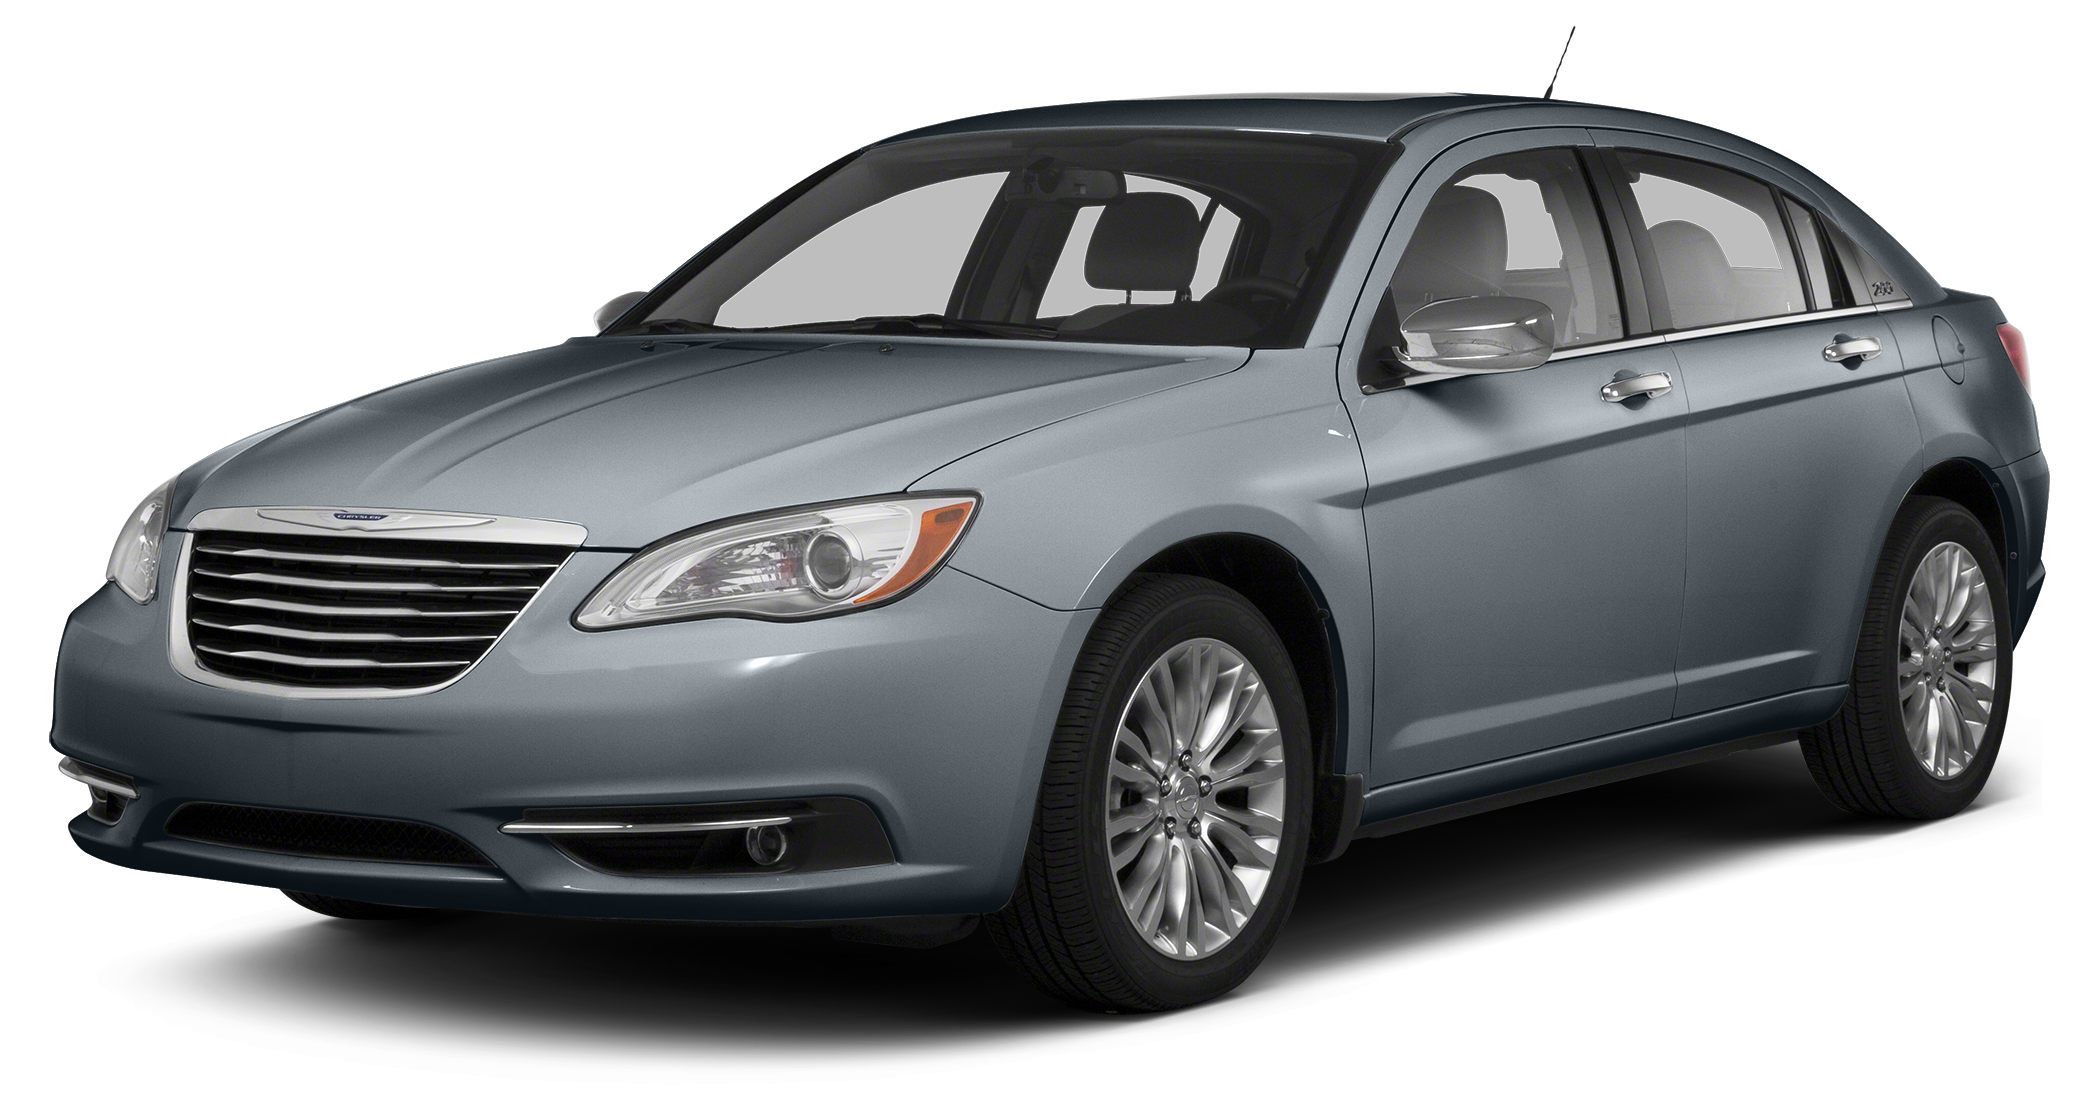 2013 Chrysler 200 LX Never worry on the road again with anti-lock brakes and stability control in t